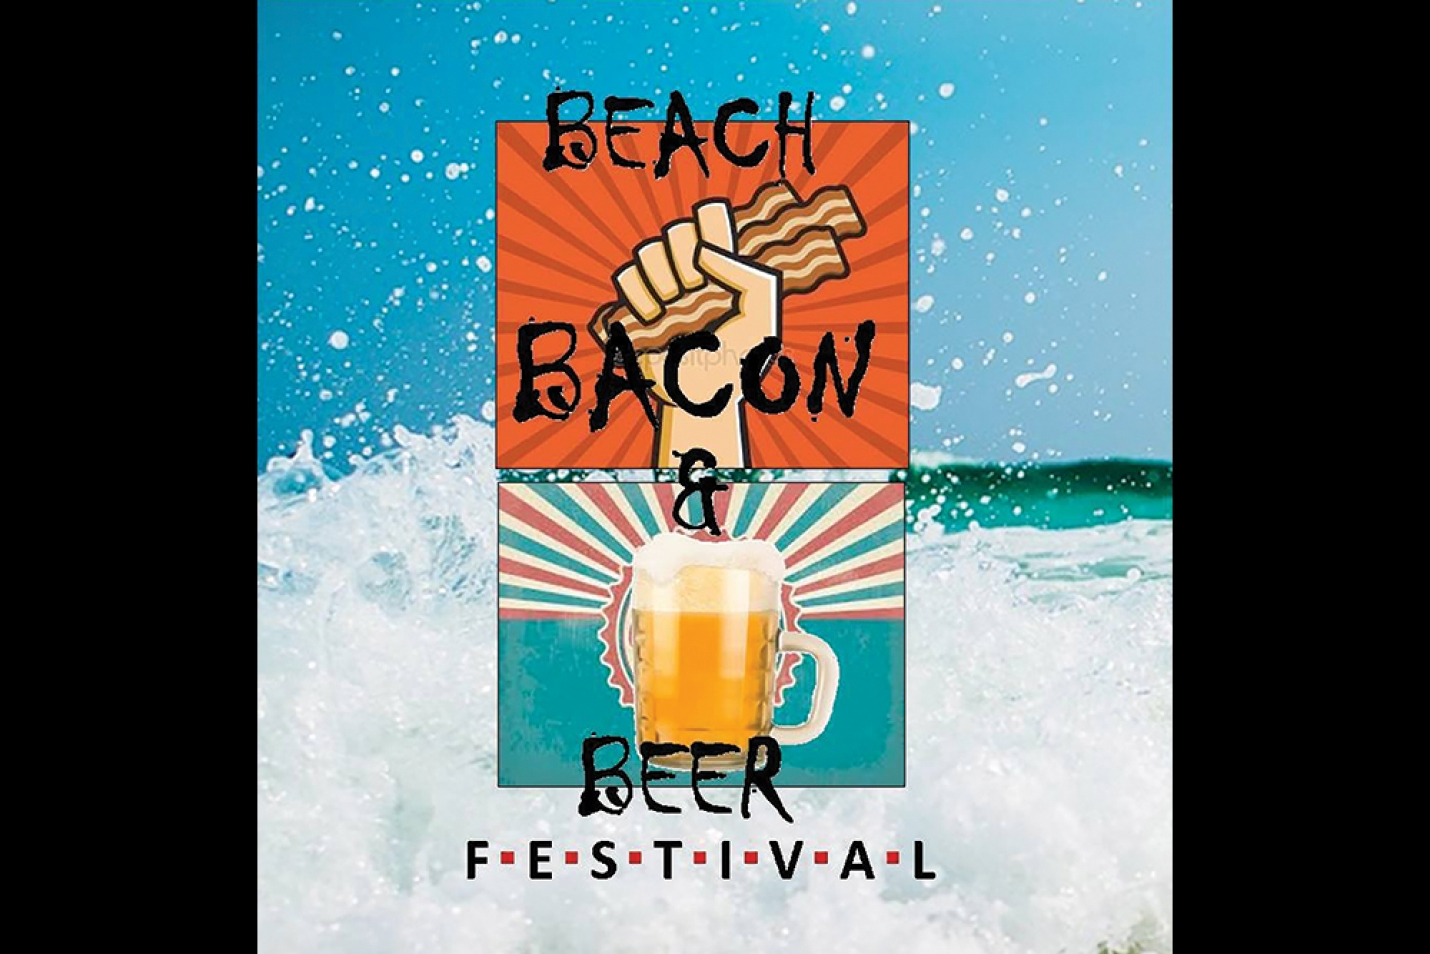 Inaugural Beach, Bacon & Beer Festival Looking For A Few Good Restaurants